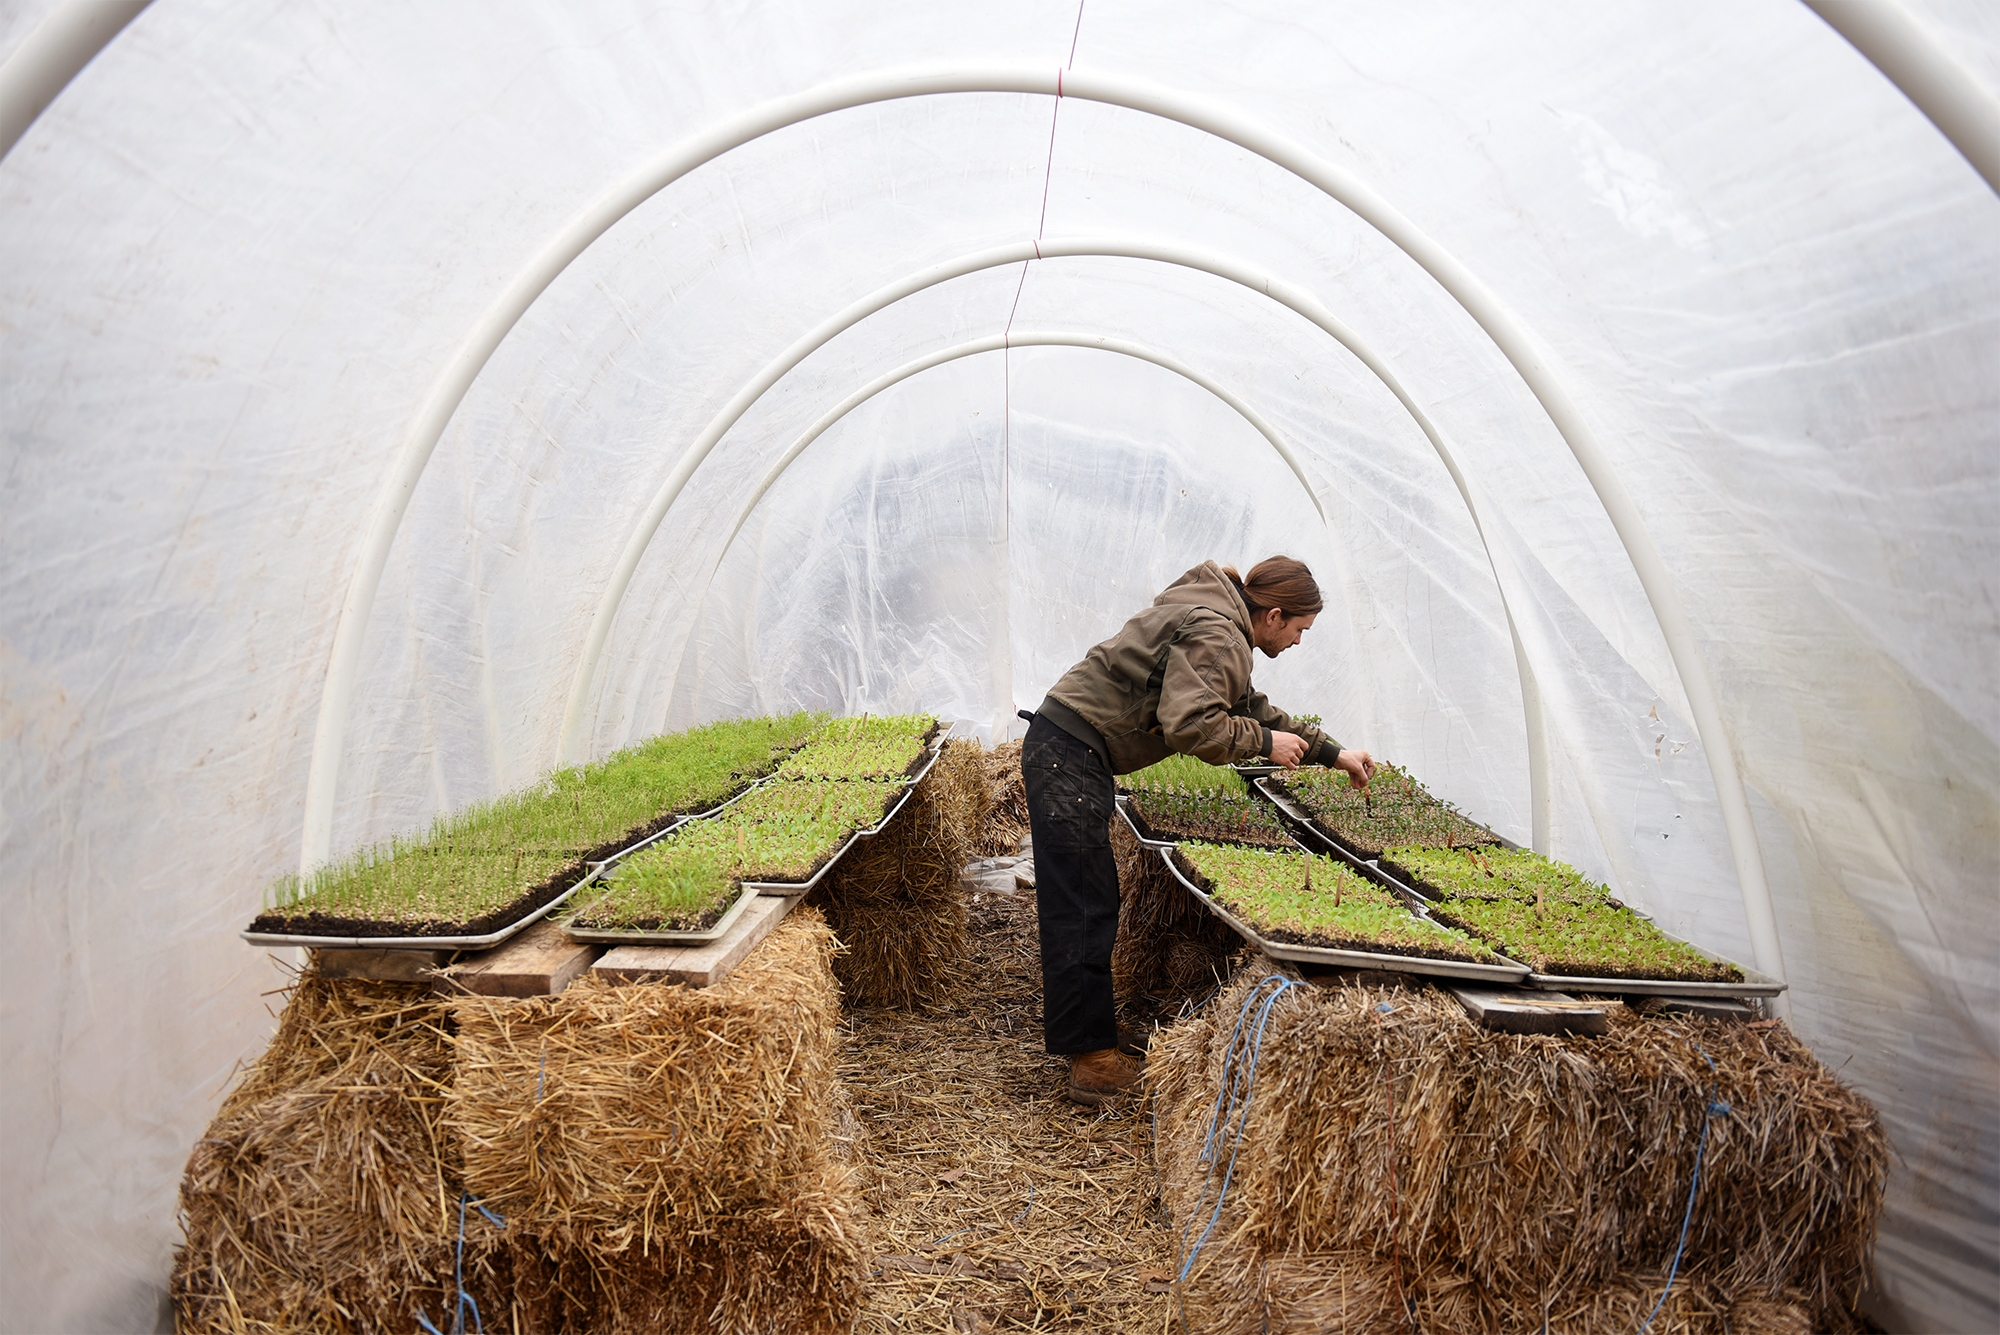 Tony Minnick checks some of the growing seedlings in the soil blocks at the Columbia Center for Urban Agriculture's urban farm on March 12, 2019 in Columbia. Minnick has been the urban farm's manager for about four seasons.